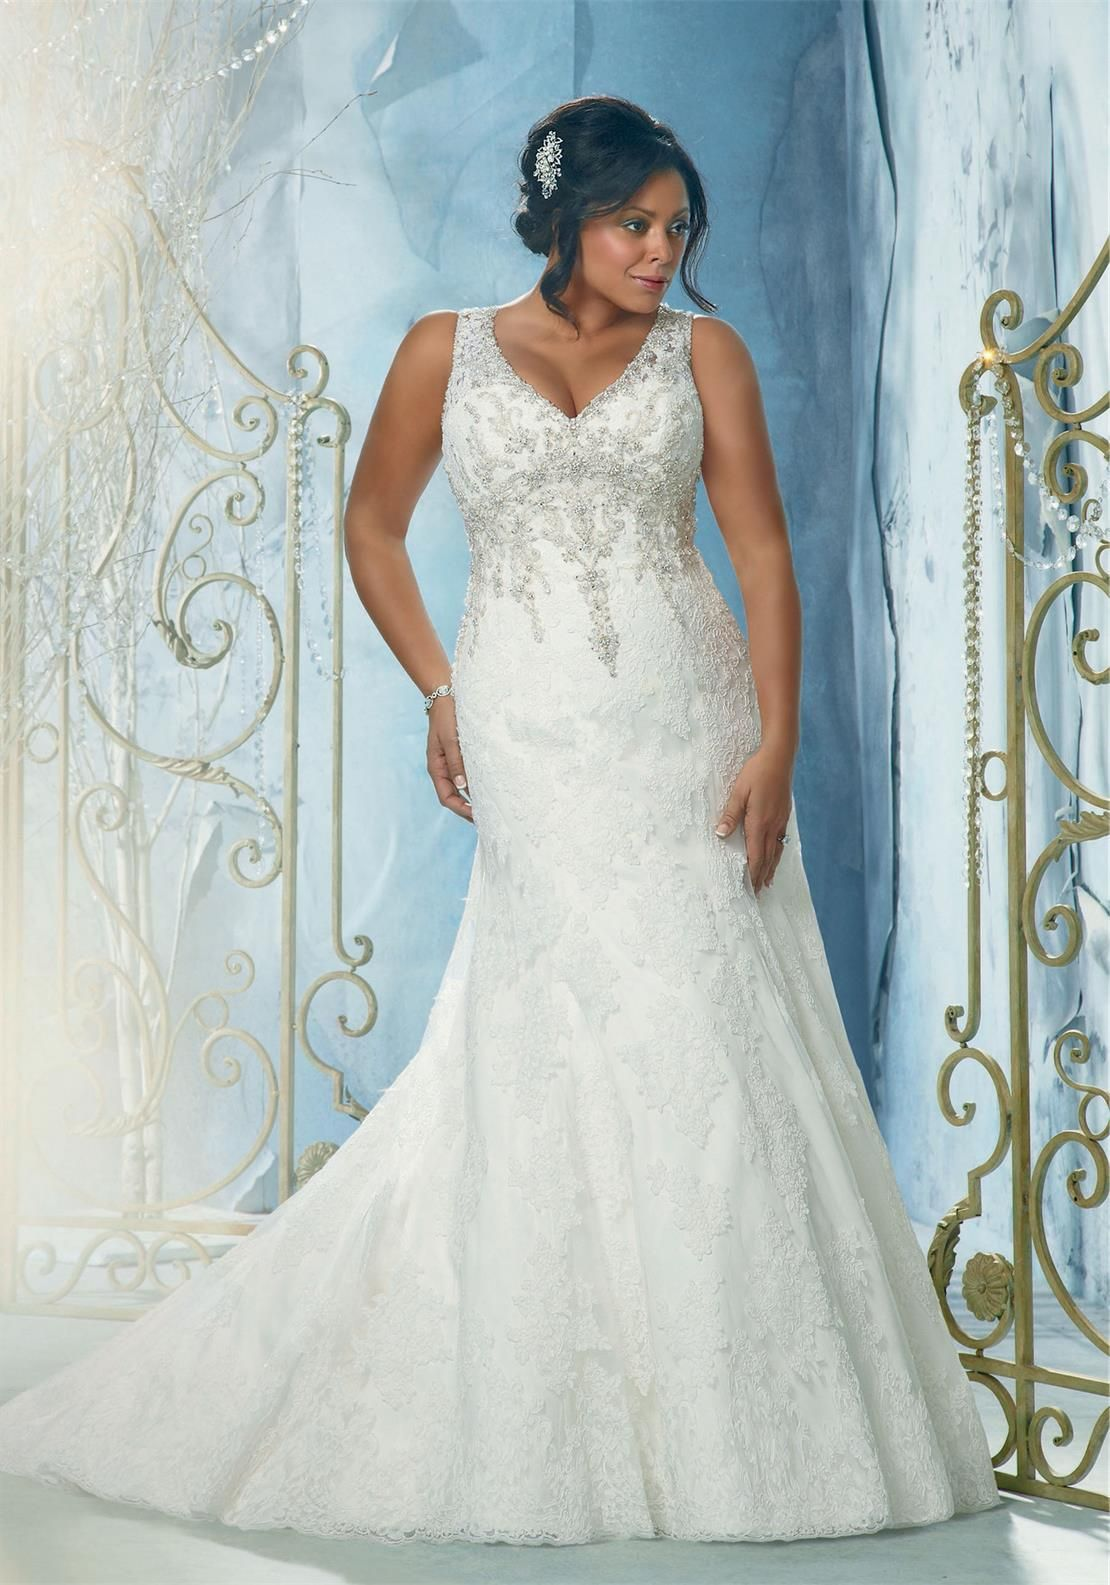 Mori Lee Julietta 3148 | McElhinneys Bridal Rooms - www ...